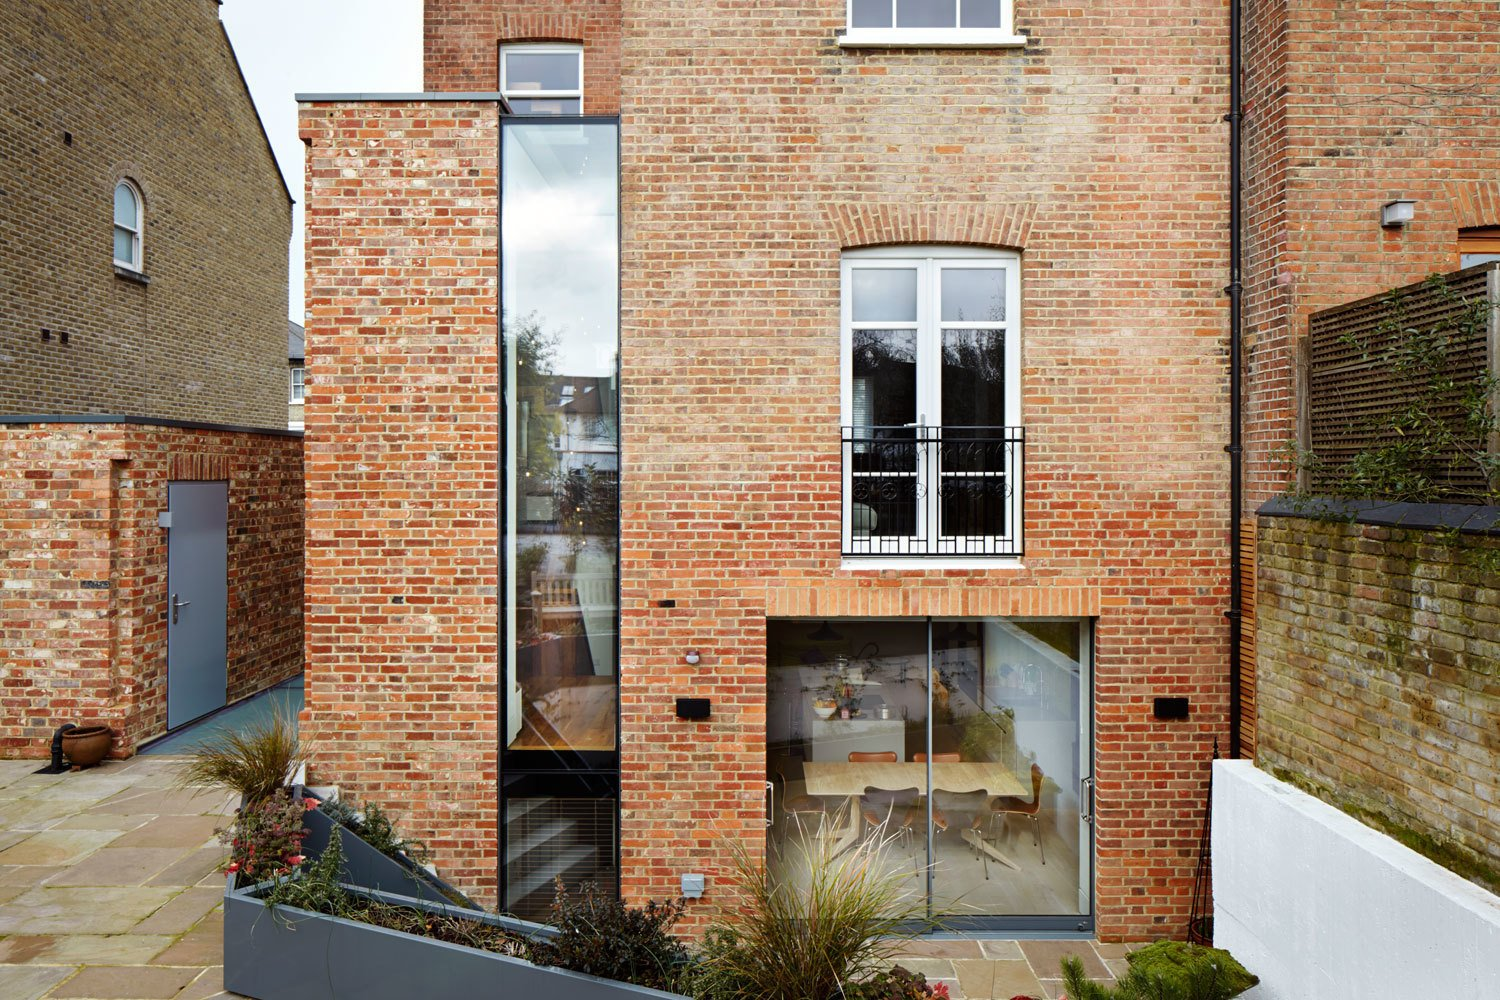 A tall and narrow window separates the new brickwork from the historic building, making its lines and profile clearly understandable.  Raconteur Renovations: Homes with Some Serious History by Matthew Keeshin from Lantern Home